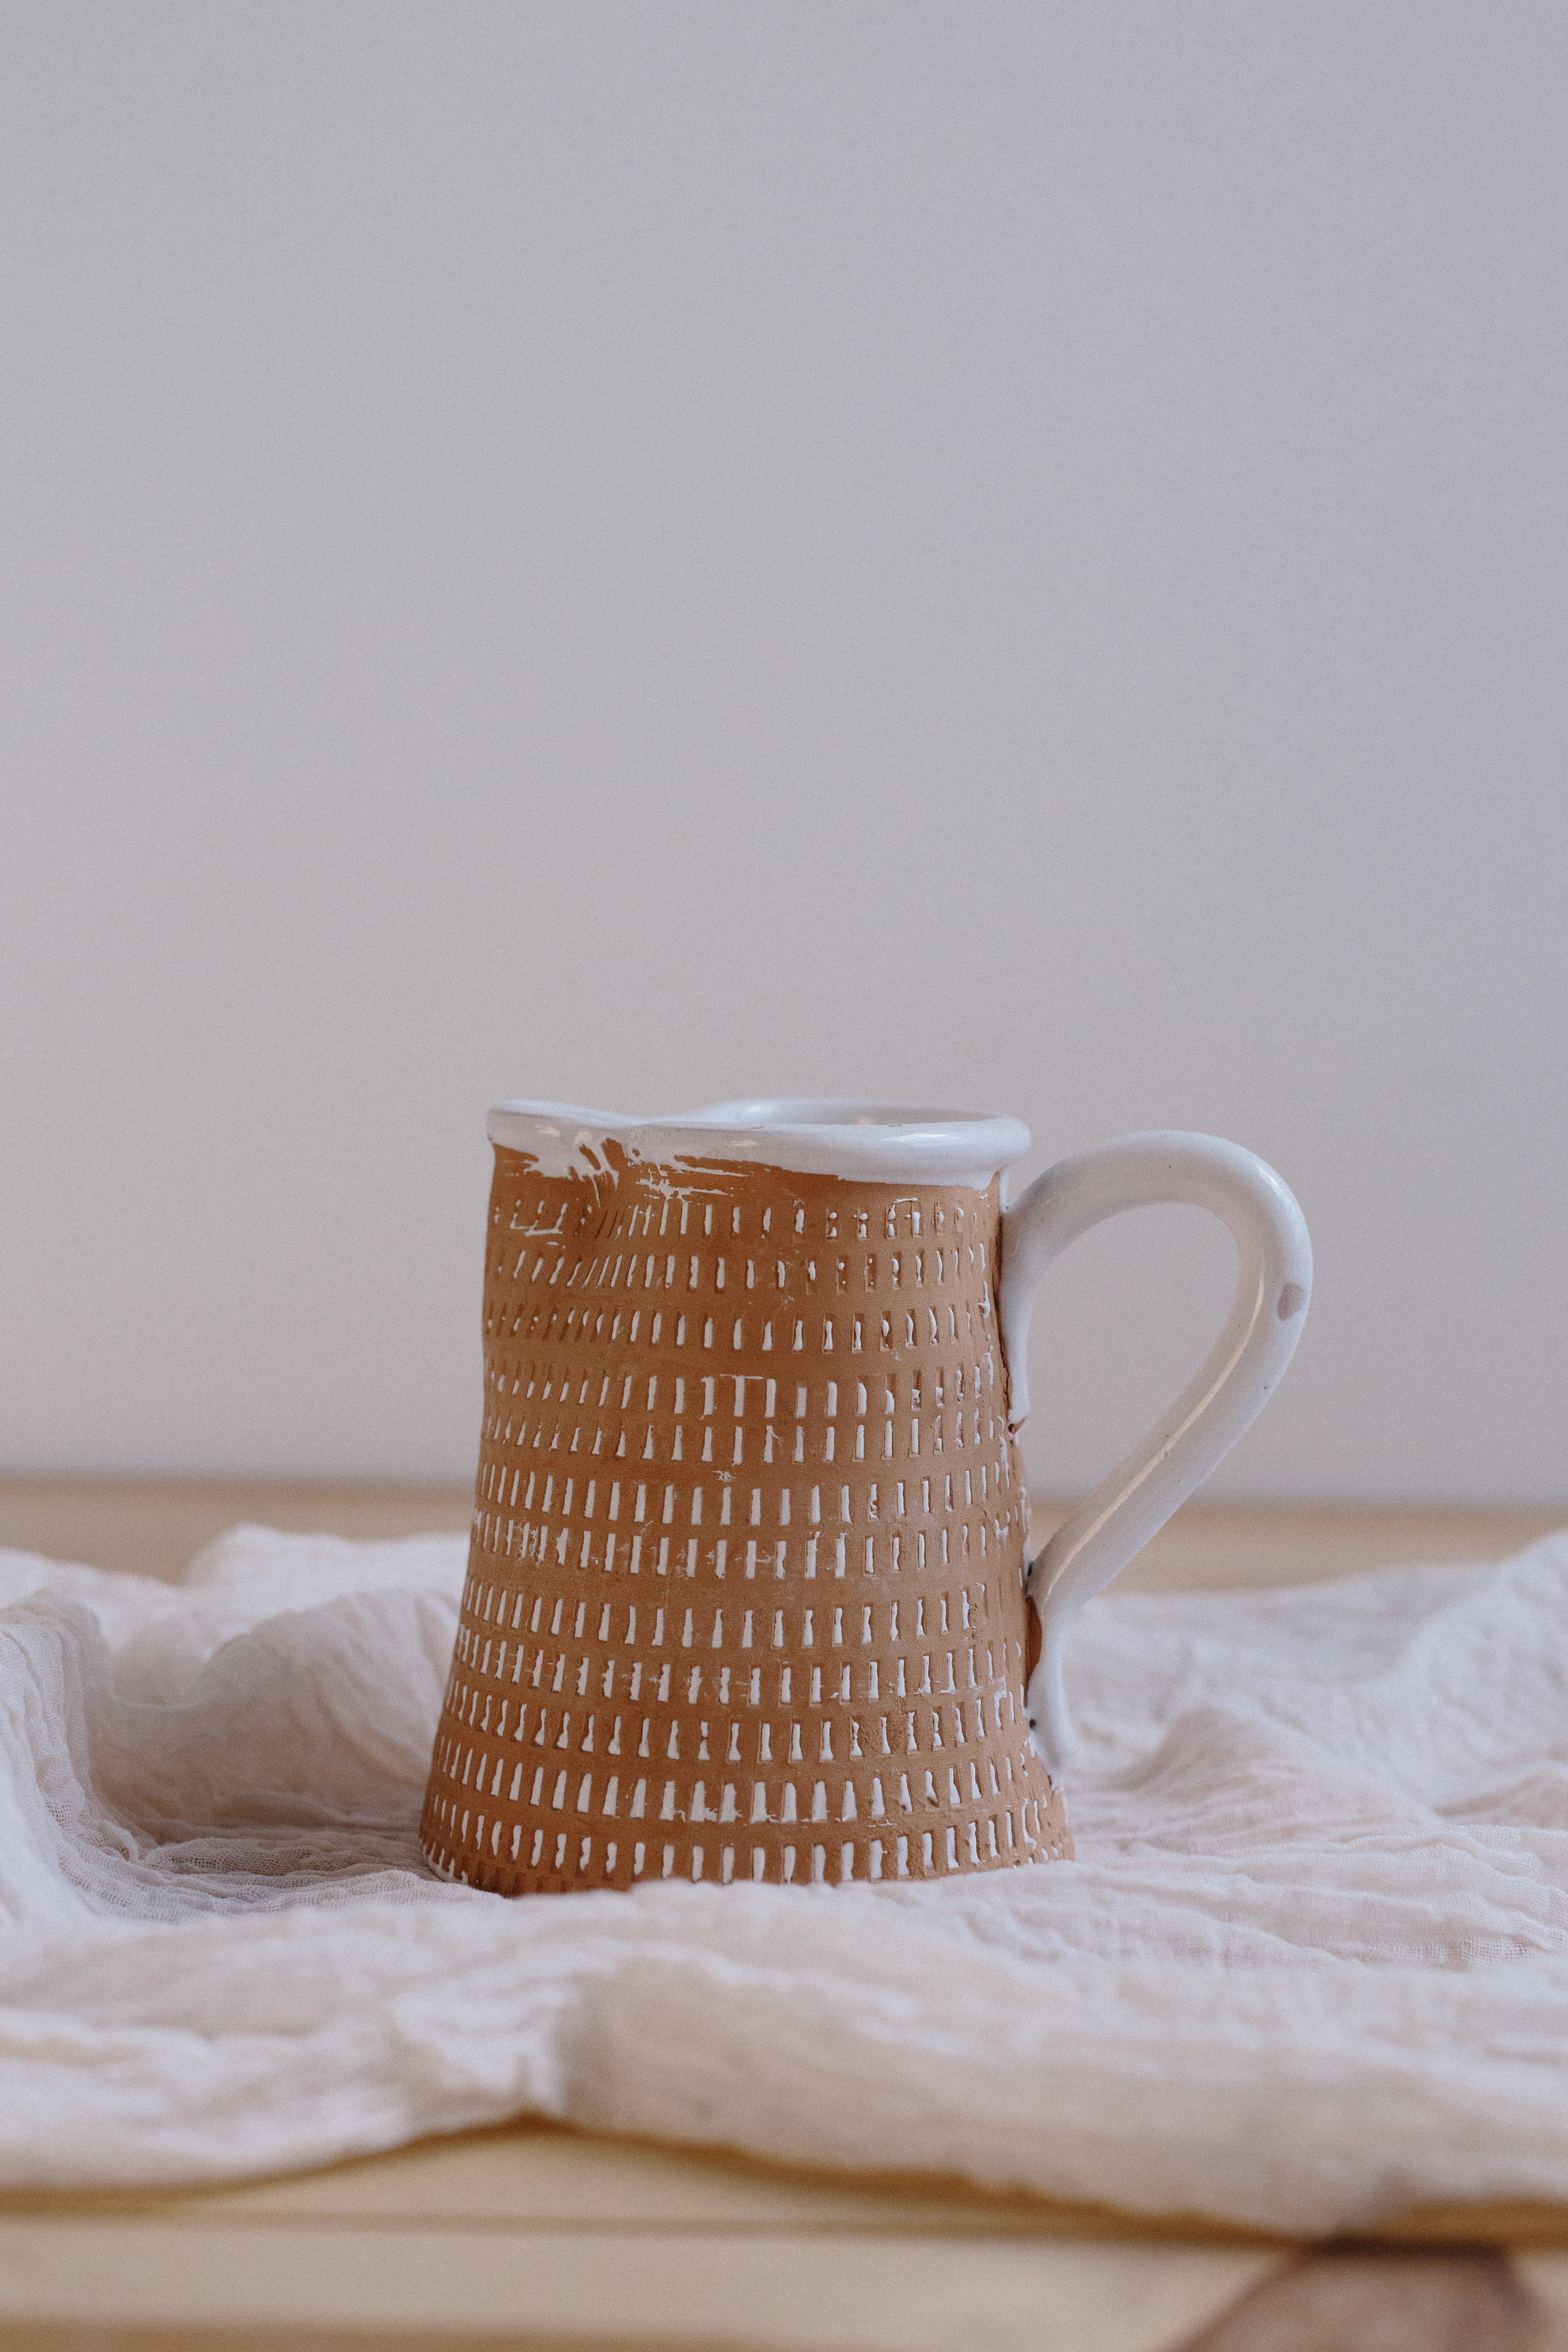 WHITE AND TAN CERAMIC PITCHER // $6